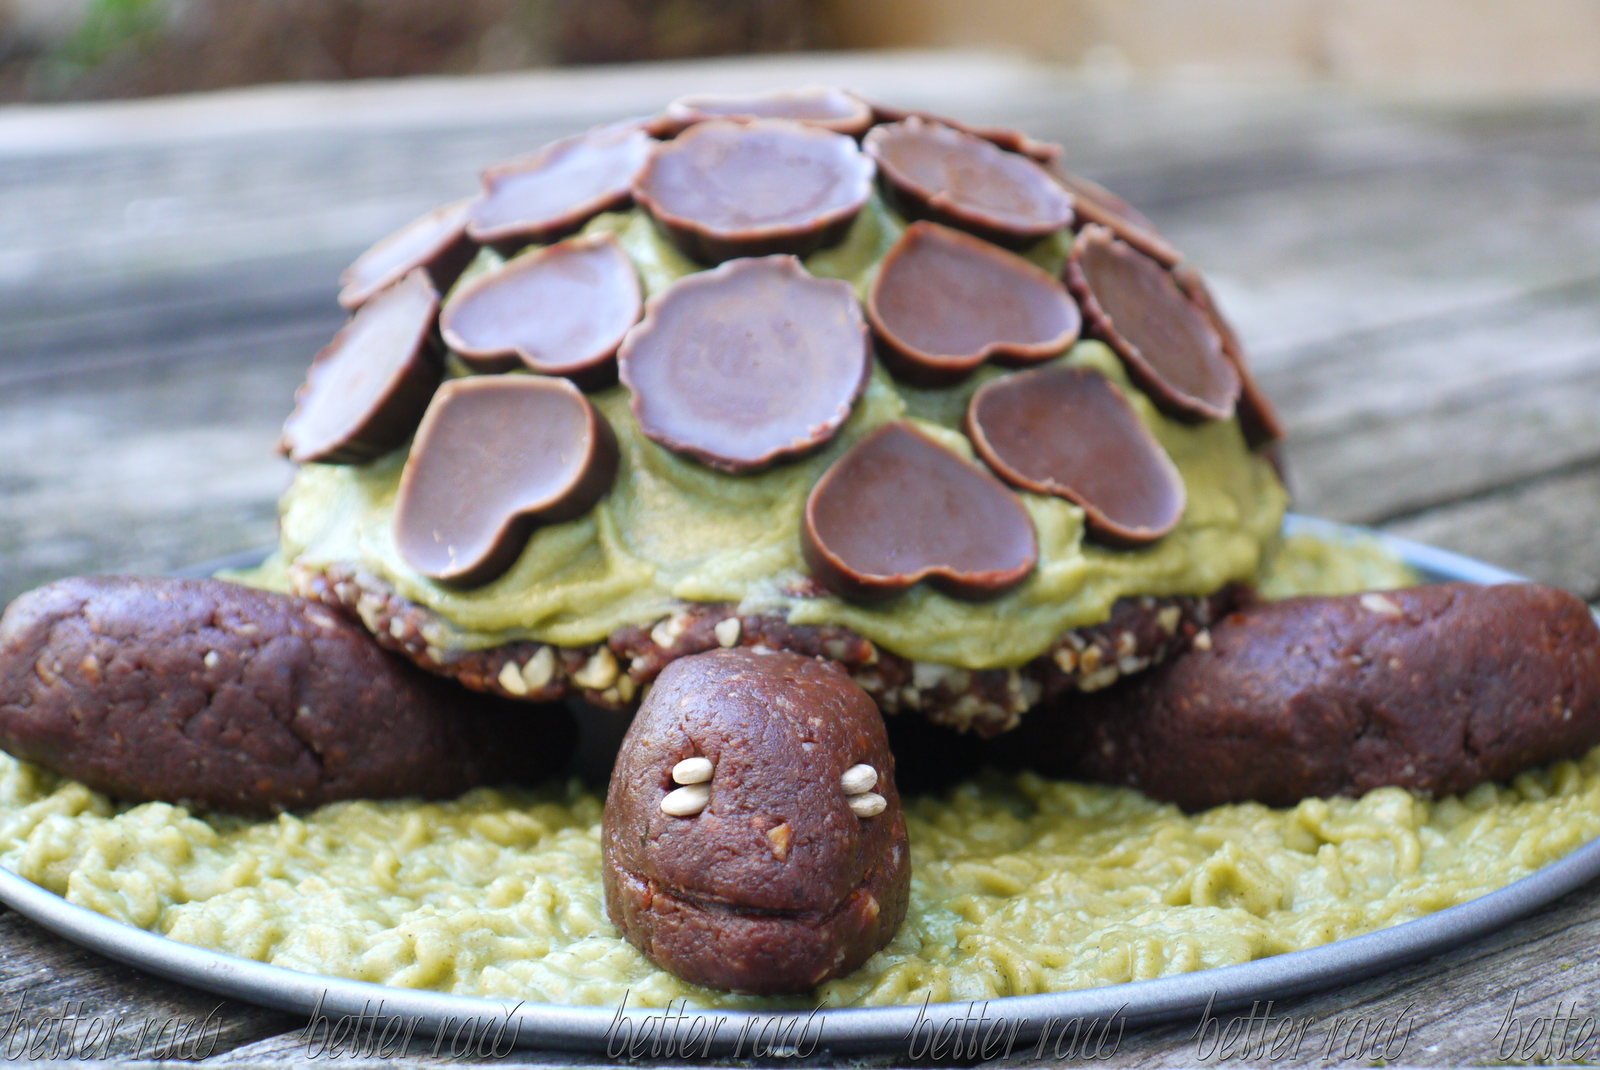 Tortoise cake Recipe step by step at home 92